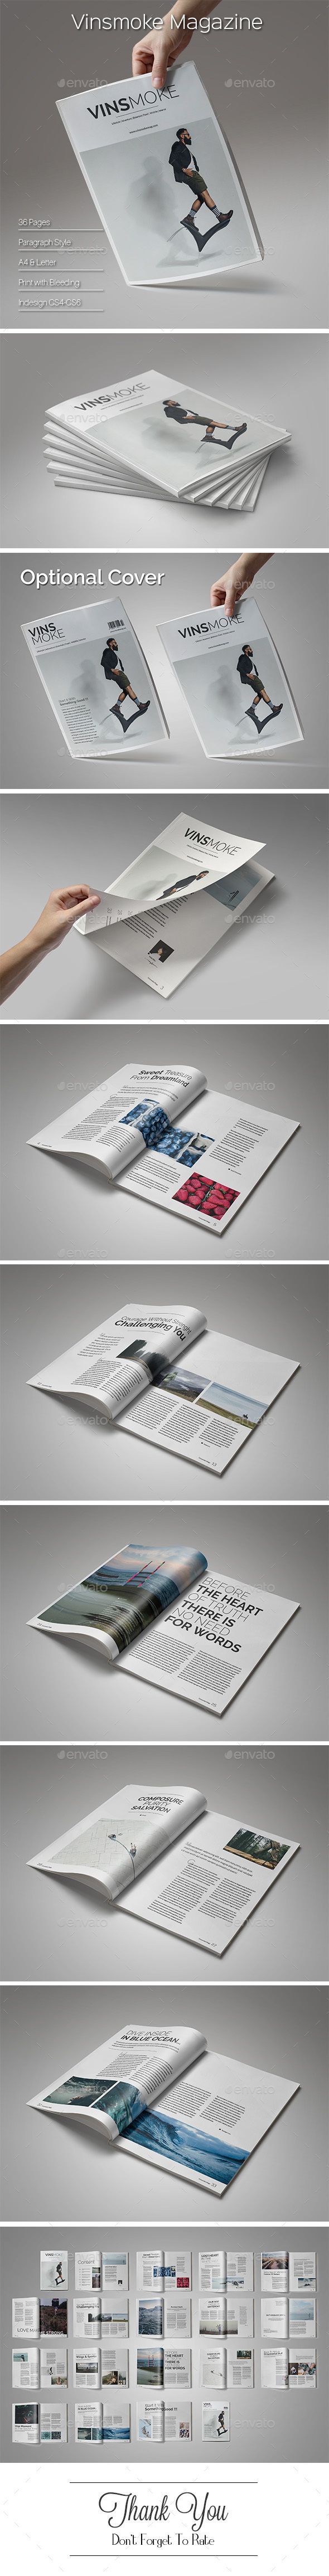 Vinsmoke Magazine  — InDesign Template #297x210 #social • Download ➝ https://graphicriver.net/item/vinsmoke-magazine/18038625?ref=pxcr